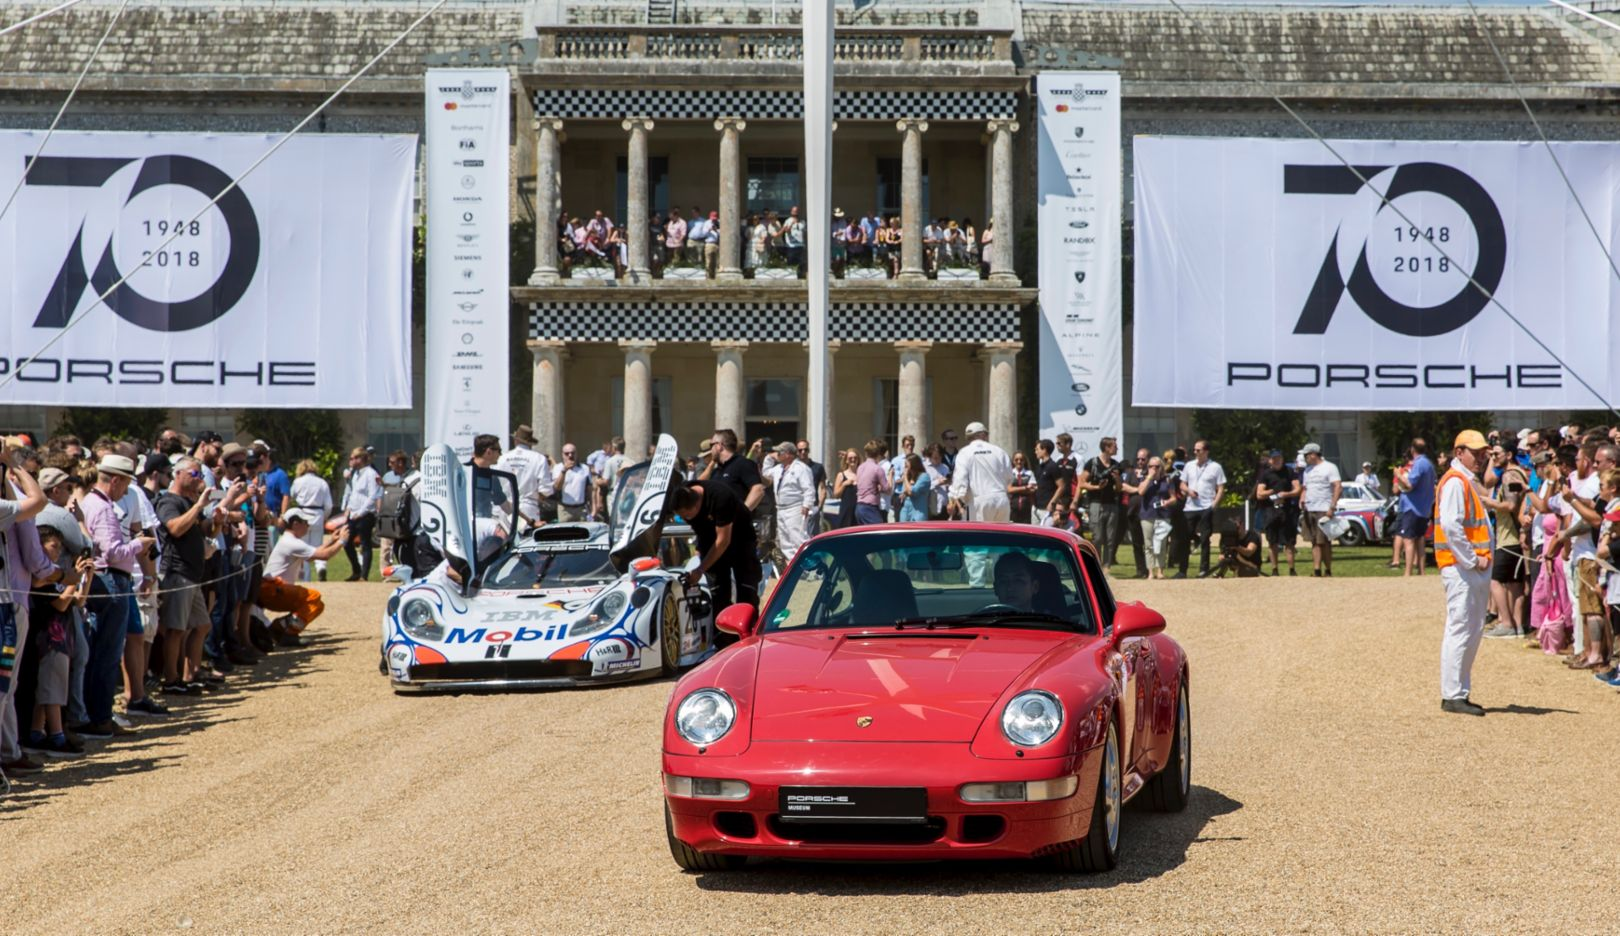 70 Jahre Porsche, Goodwood Festival of Speed, 2018, Porsche AG